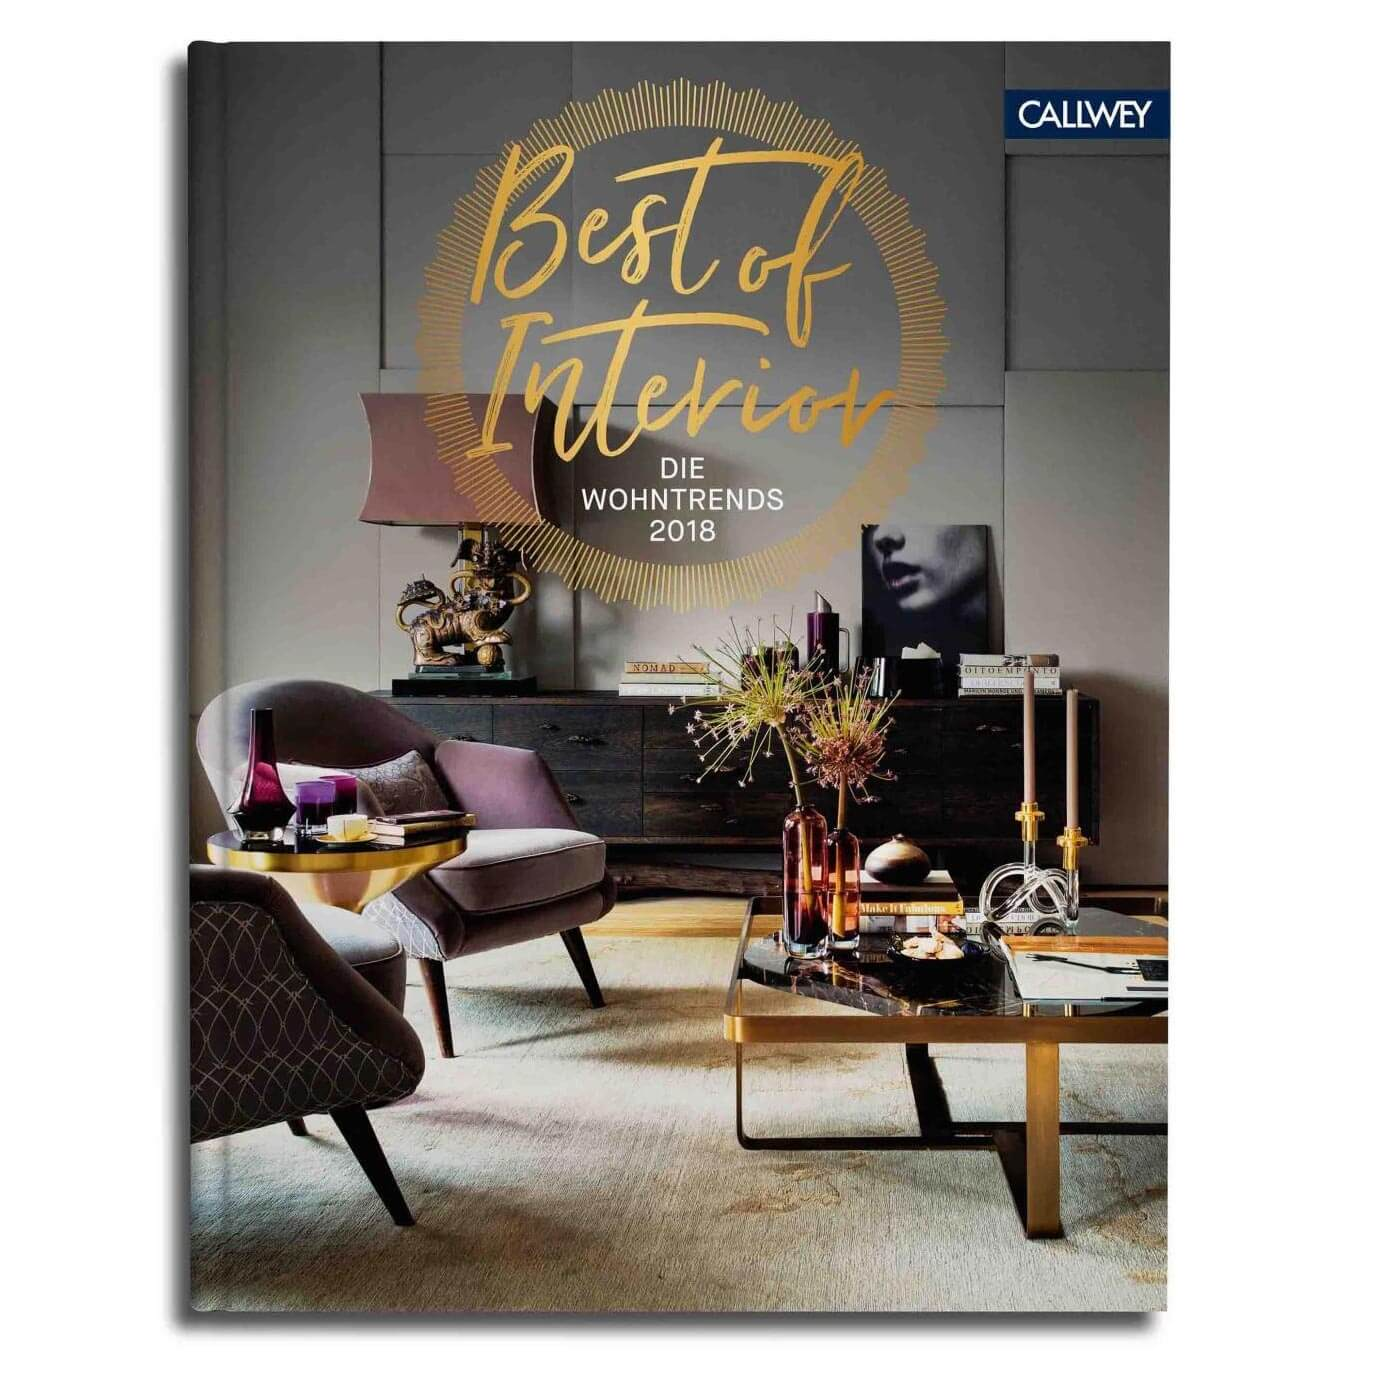 Best of Interior – Die Wohntrends 2018